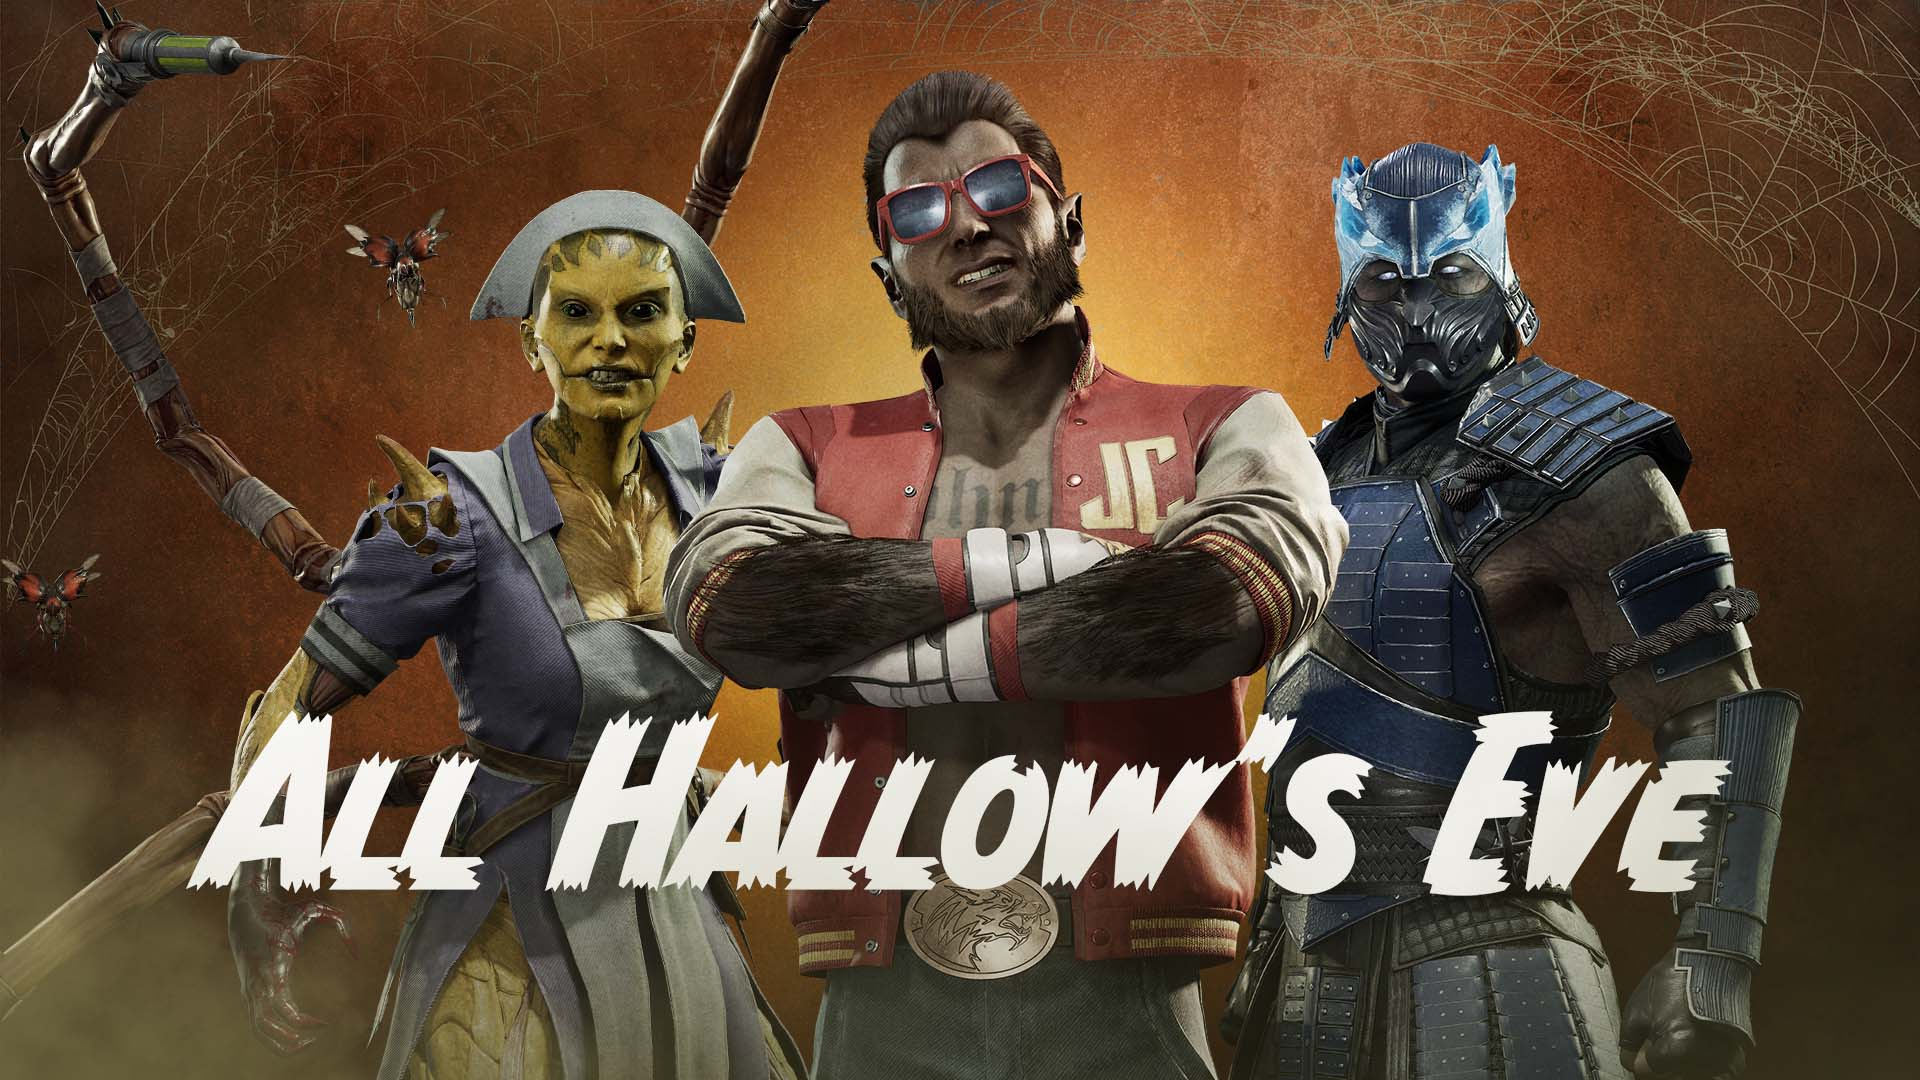 MK11 Aftermath All Hallows' Eve Skin Pack